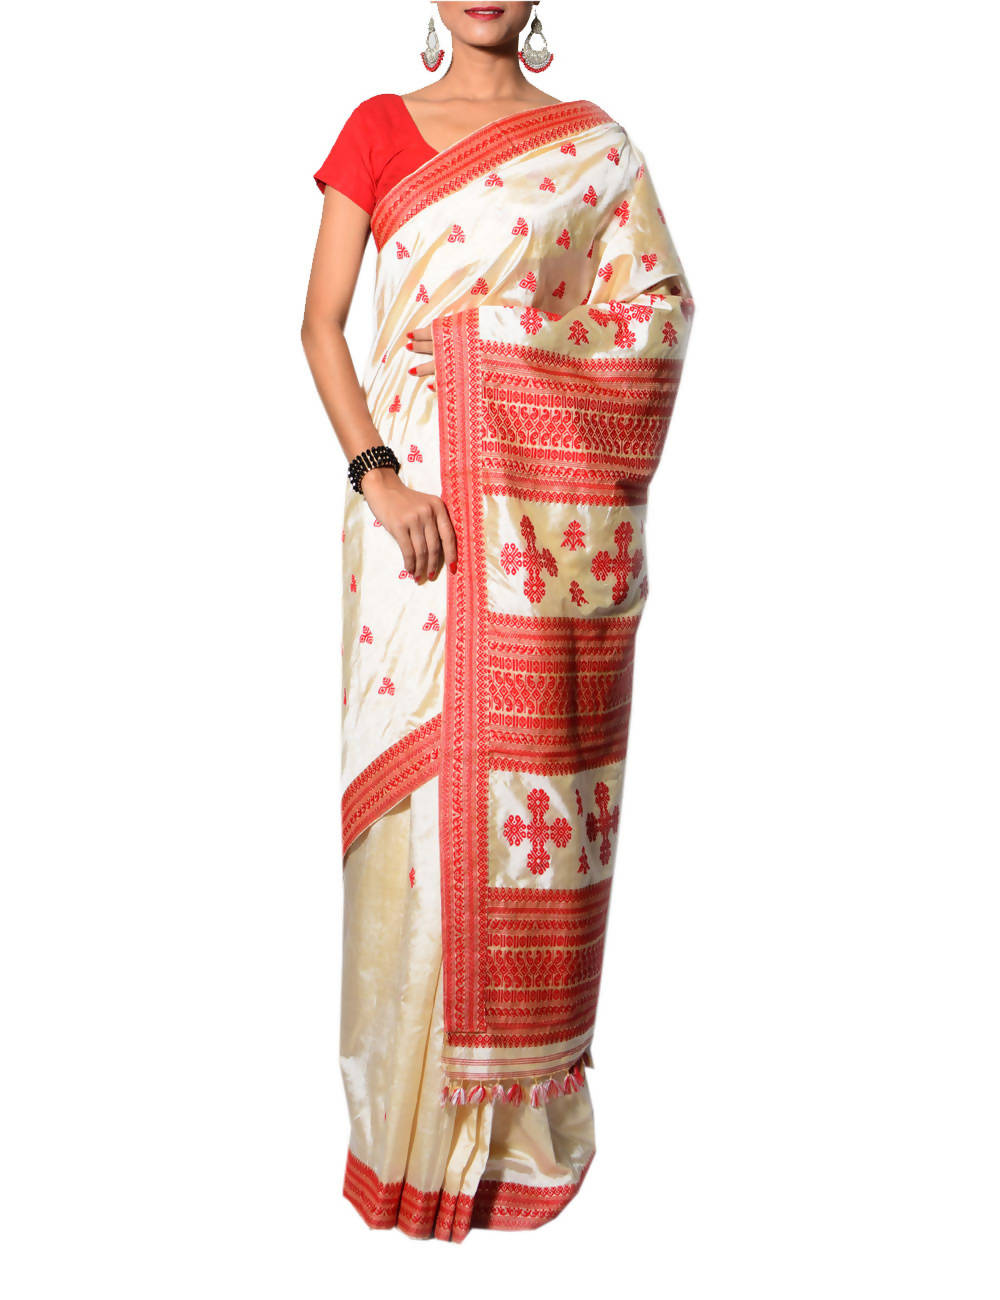 Off White and Red Handloom Assam Silk Saree